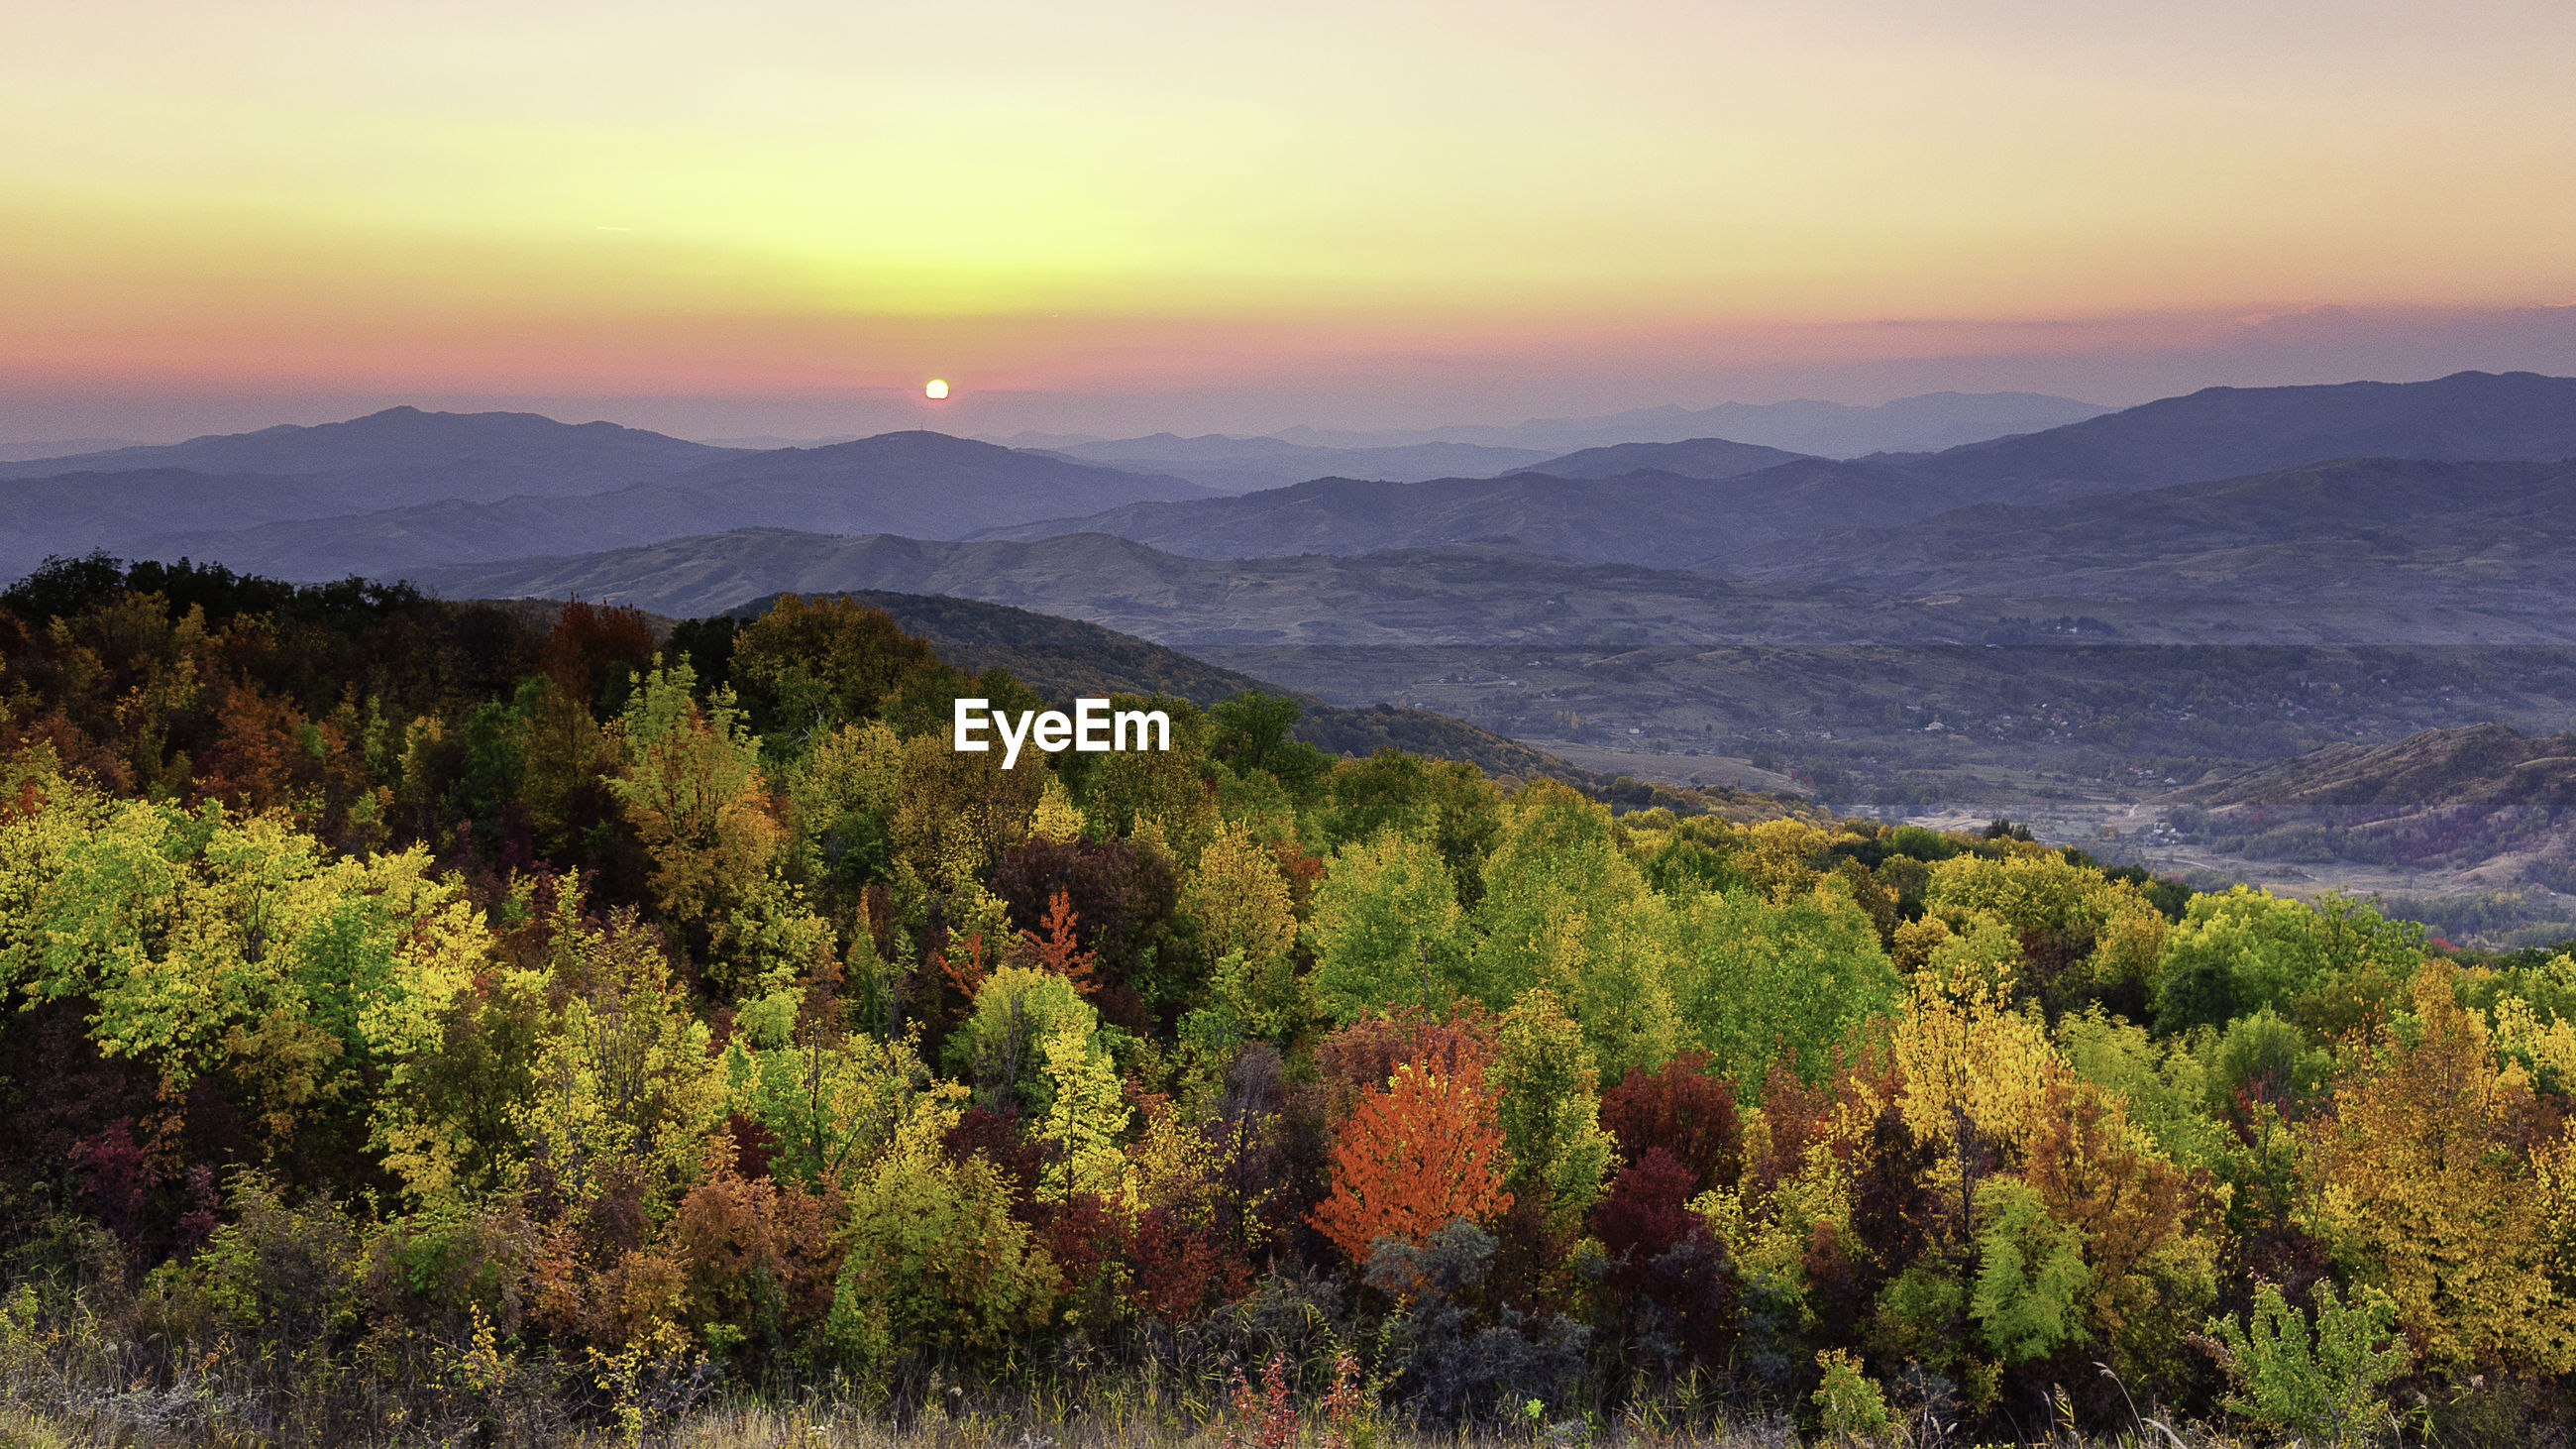 SCENIC VIEW OF TREES AND MOUNTAINS AGAINST SKY DURING SUNSET